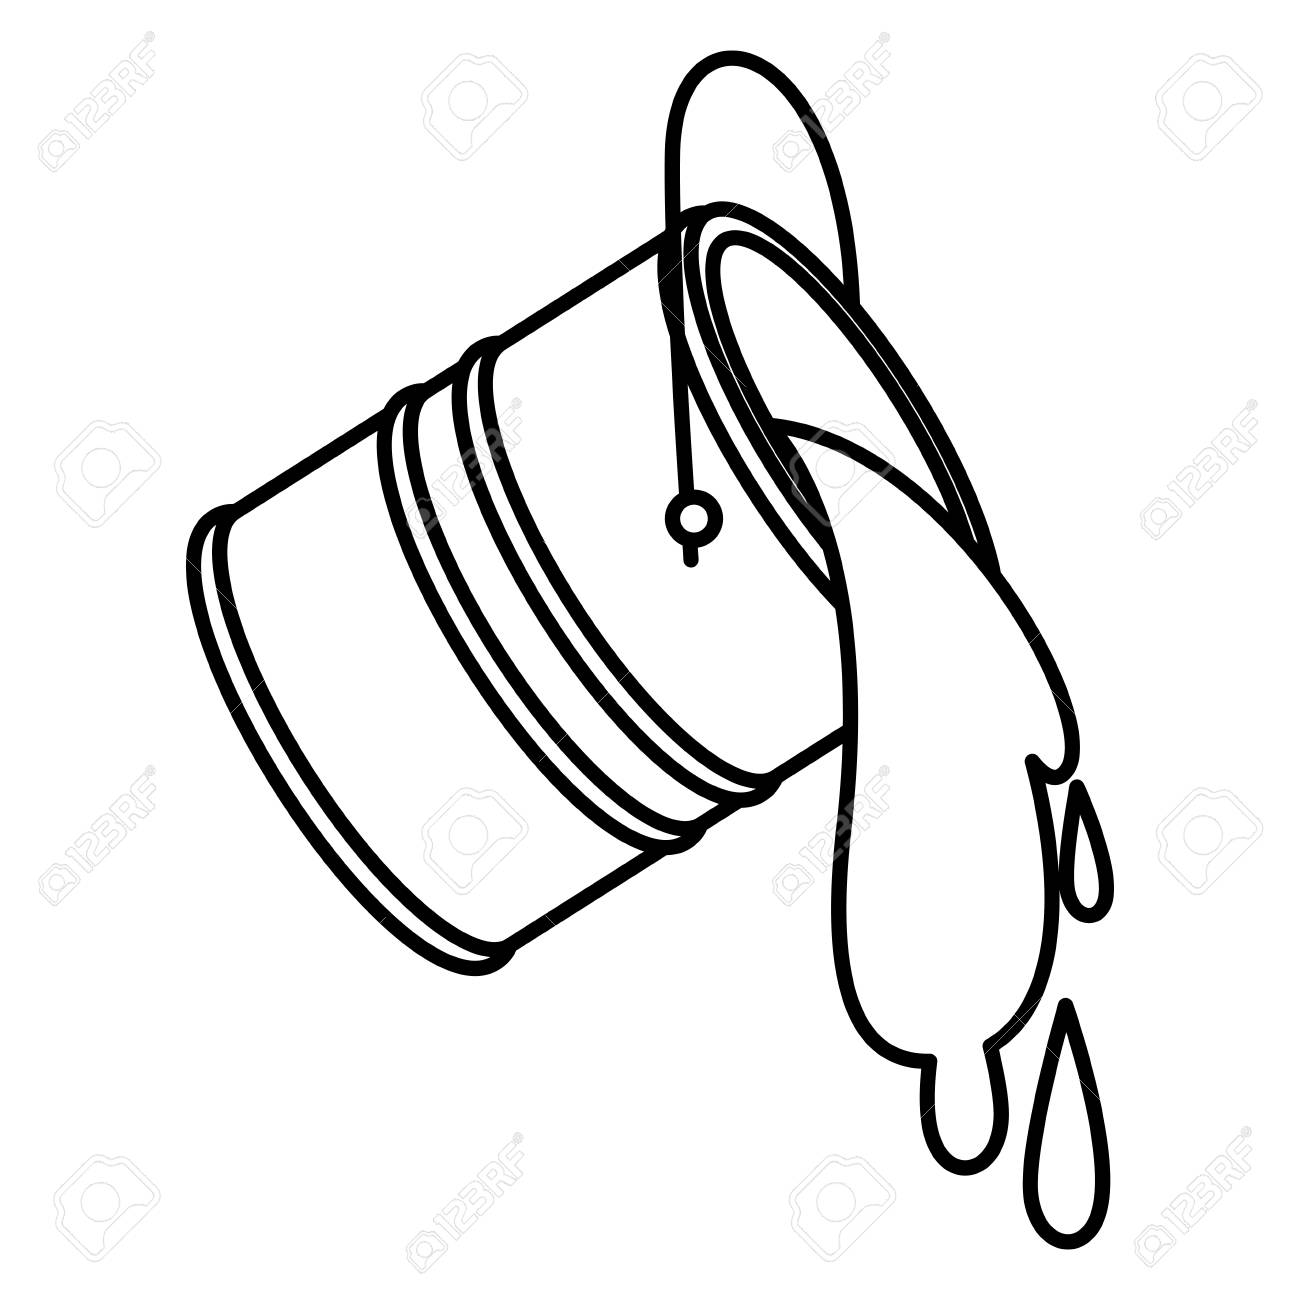 Paint bucket spilling icon in black contour vector illustration..